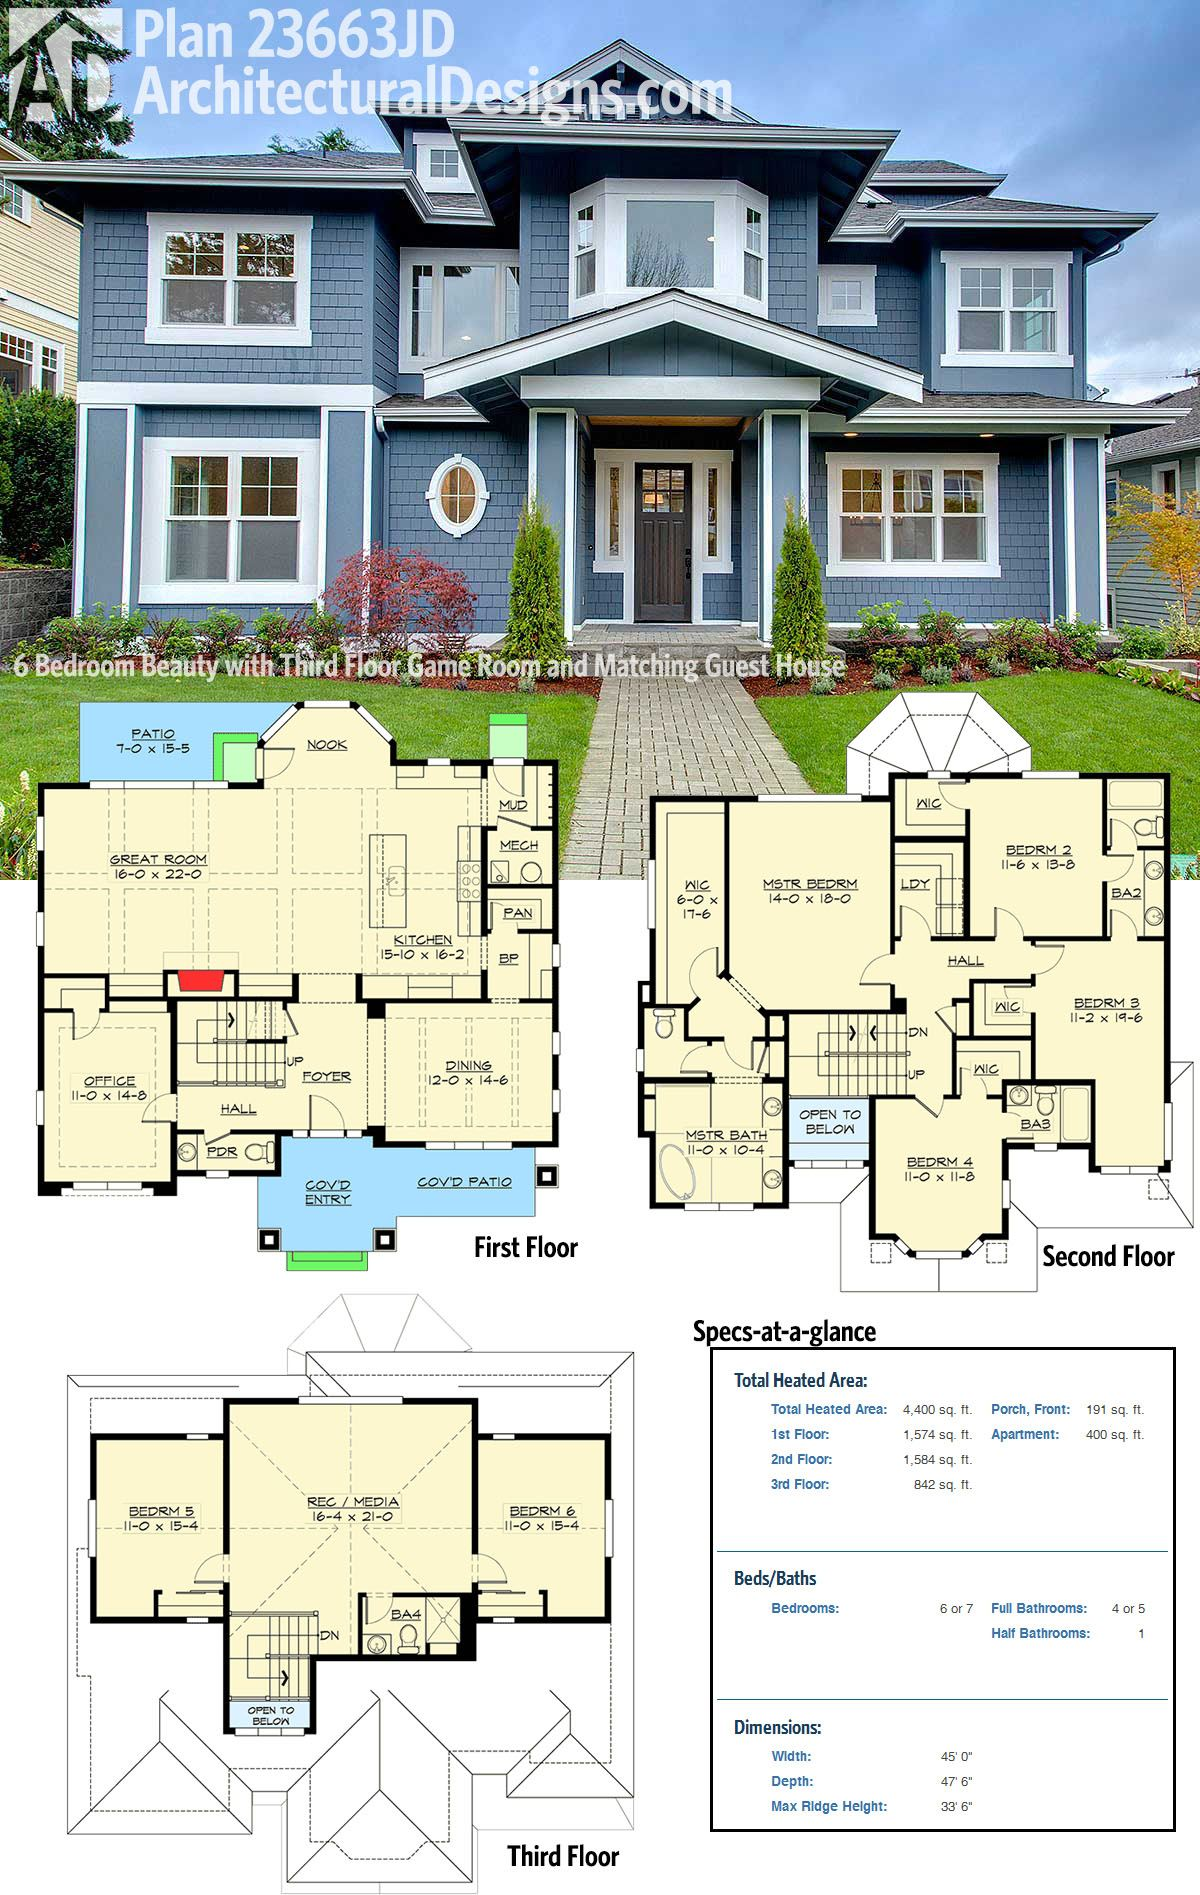 Plan 23663jd 6 bedroom beauty with third floor game room Plans for guest house